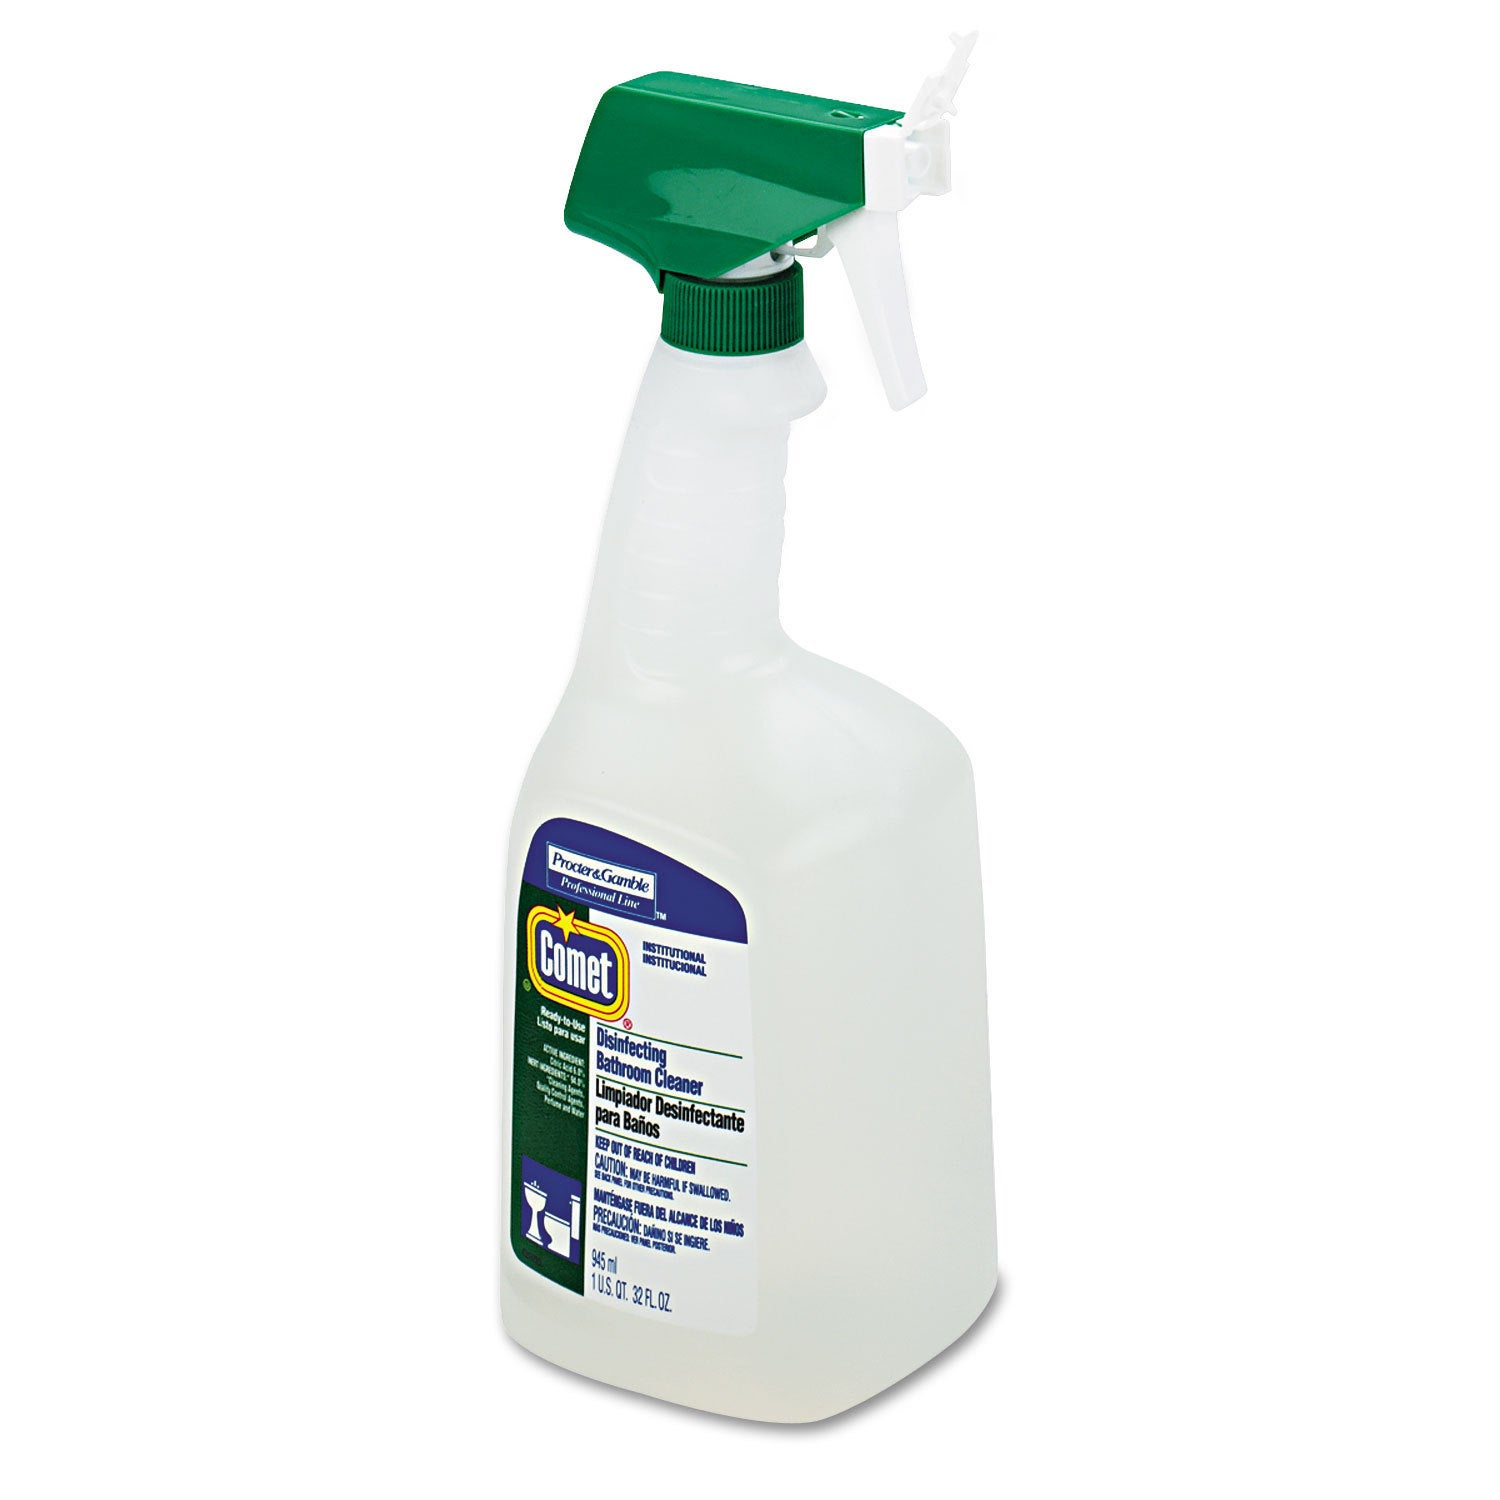 Comet Professional Disinfectant Bathroom Cleaner/ 32-ounc...